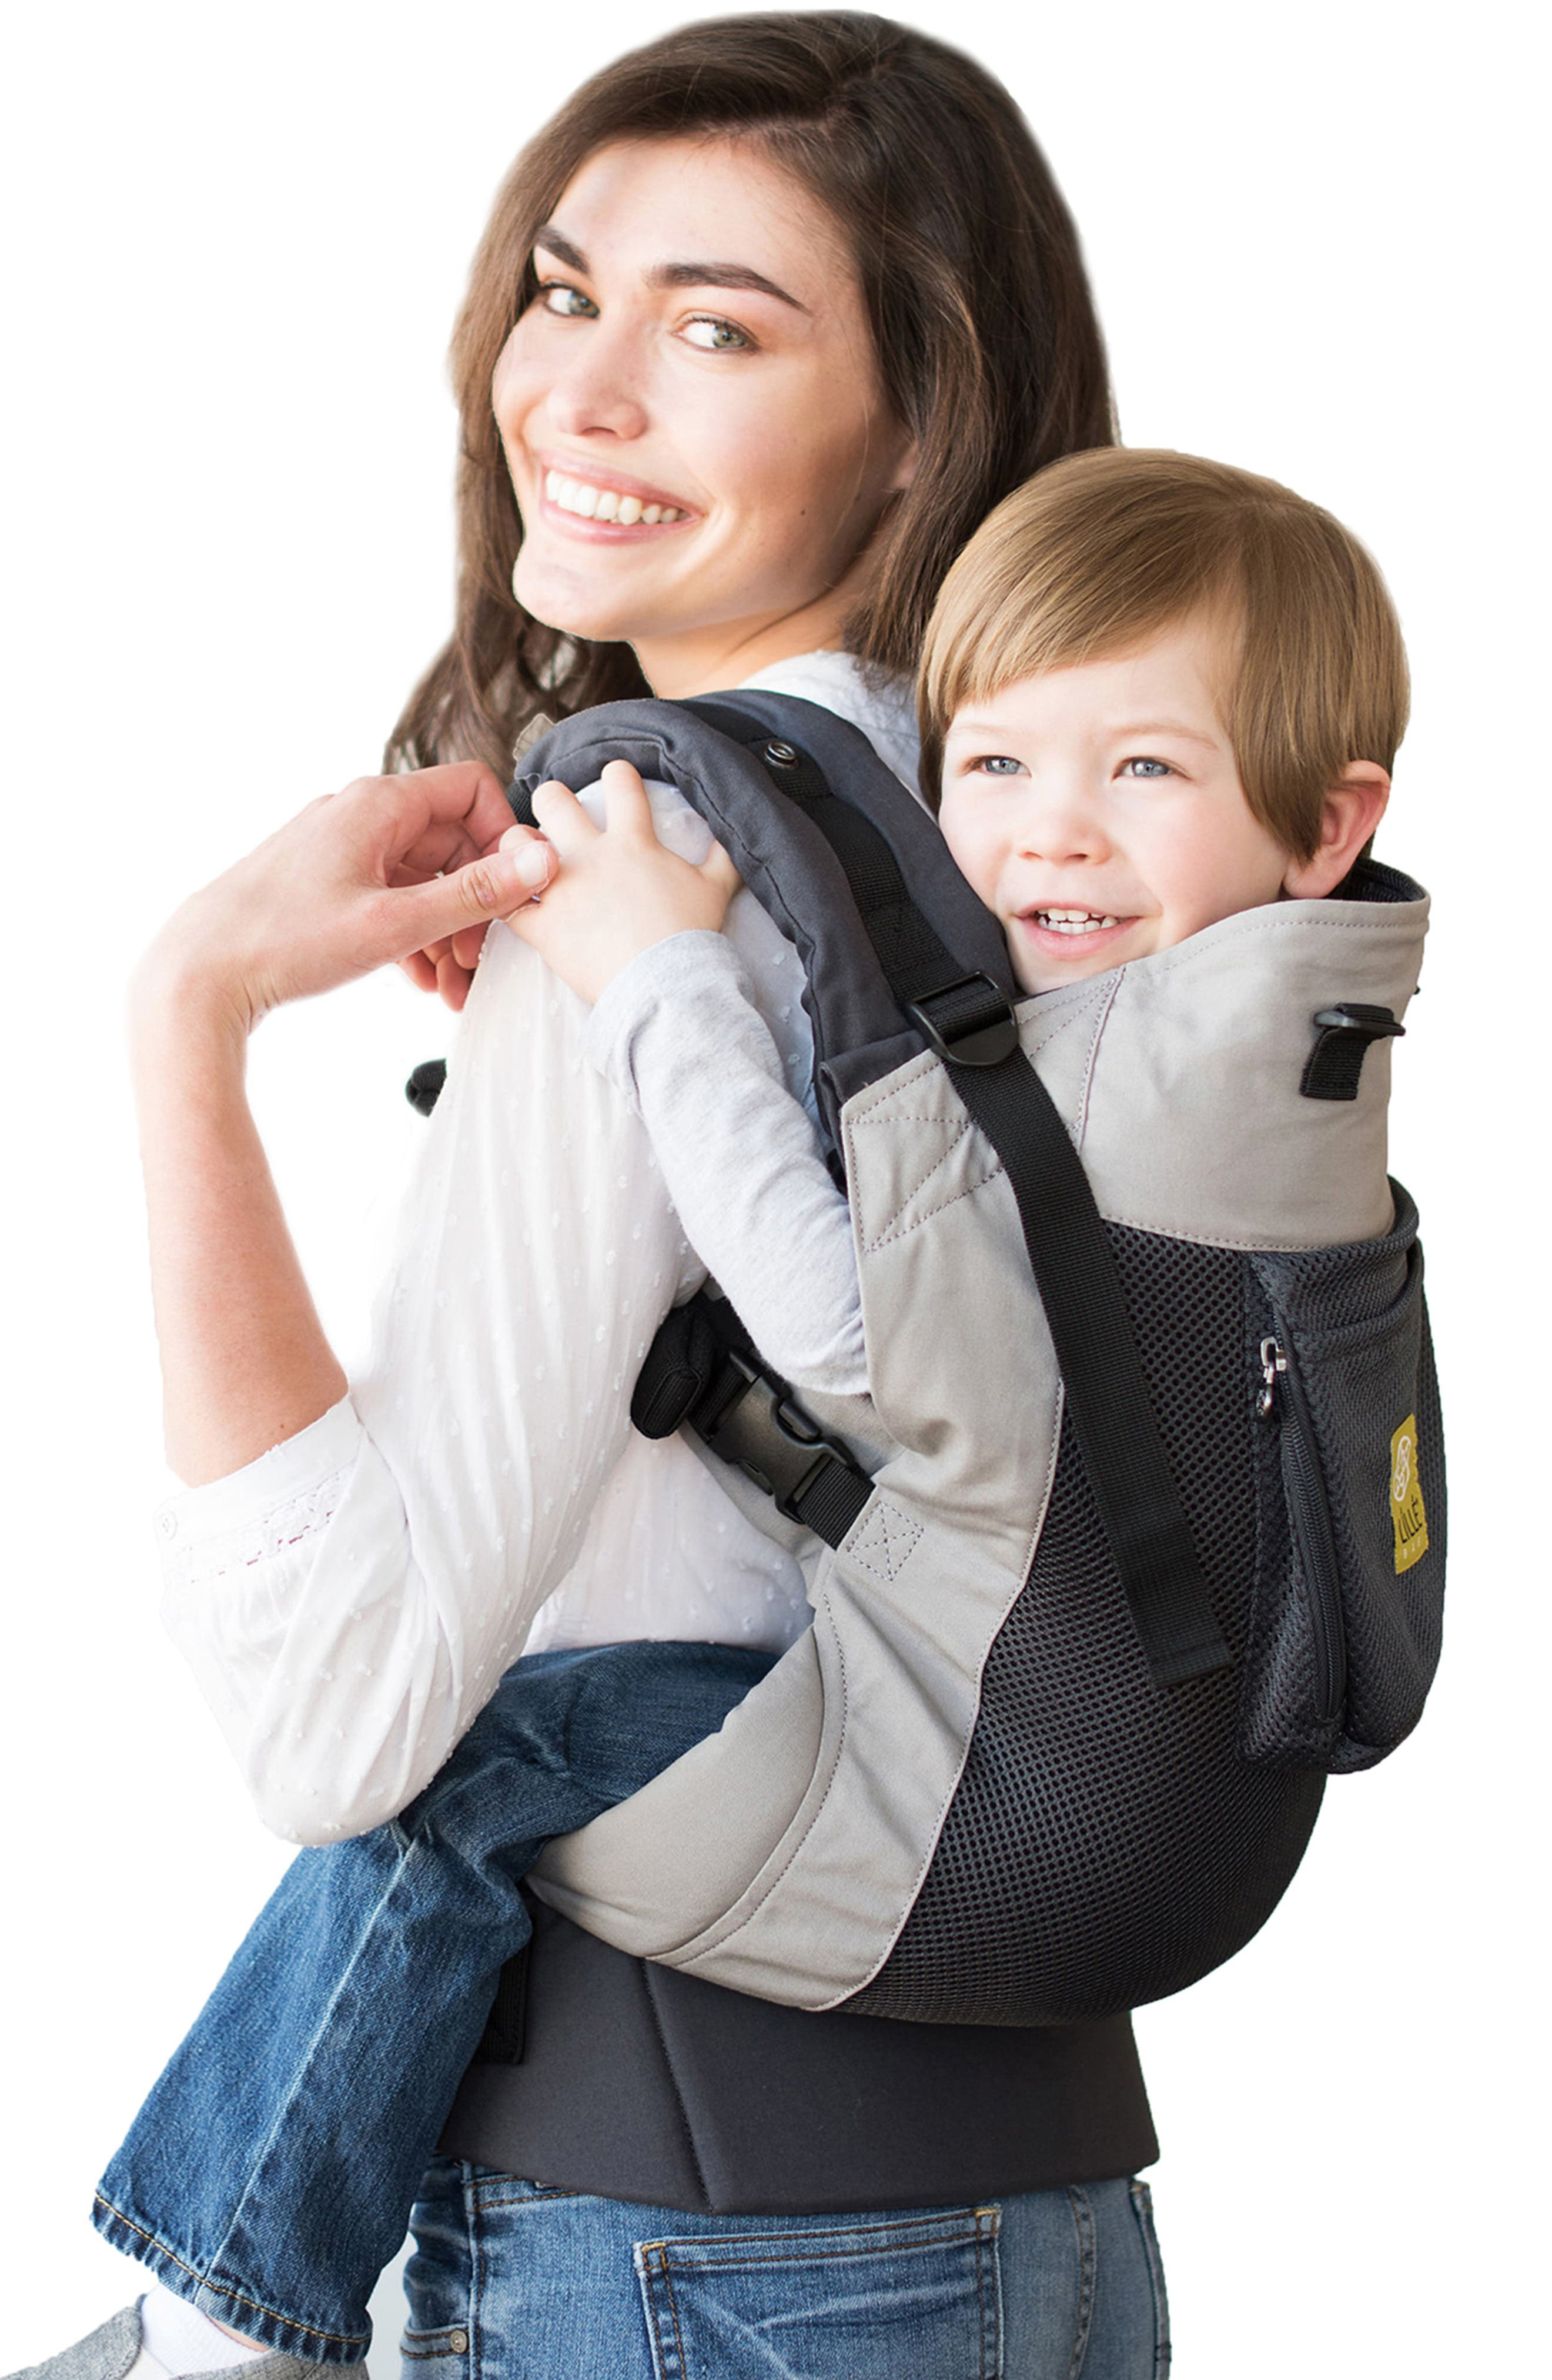 Infant Lillebaby Carryon(TM) Airflow Baby Carrier Size One Size  Grey